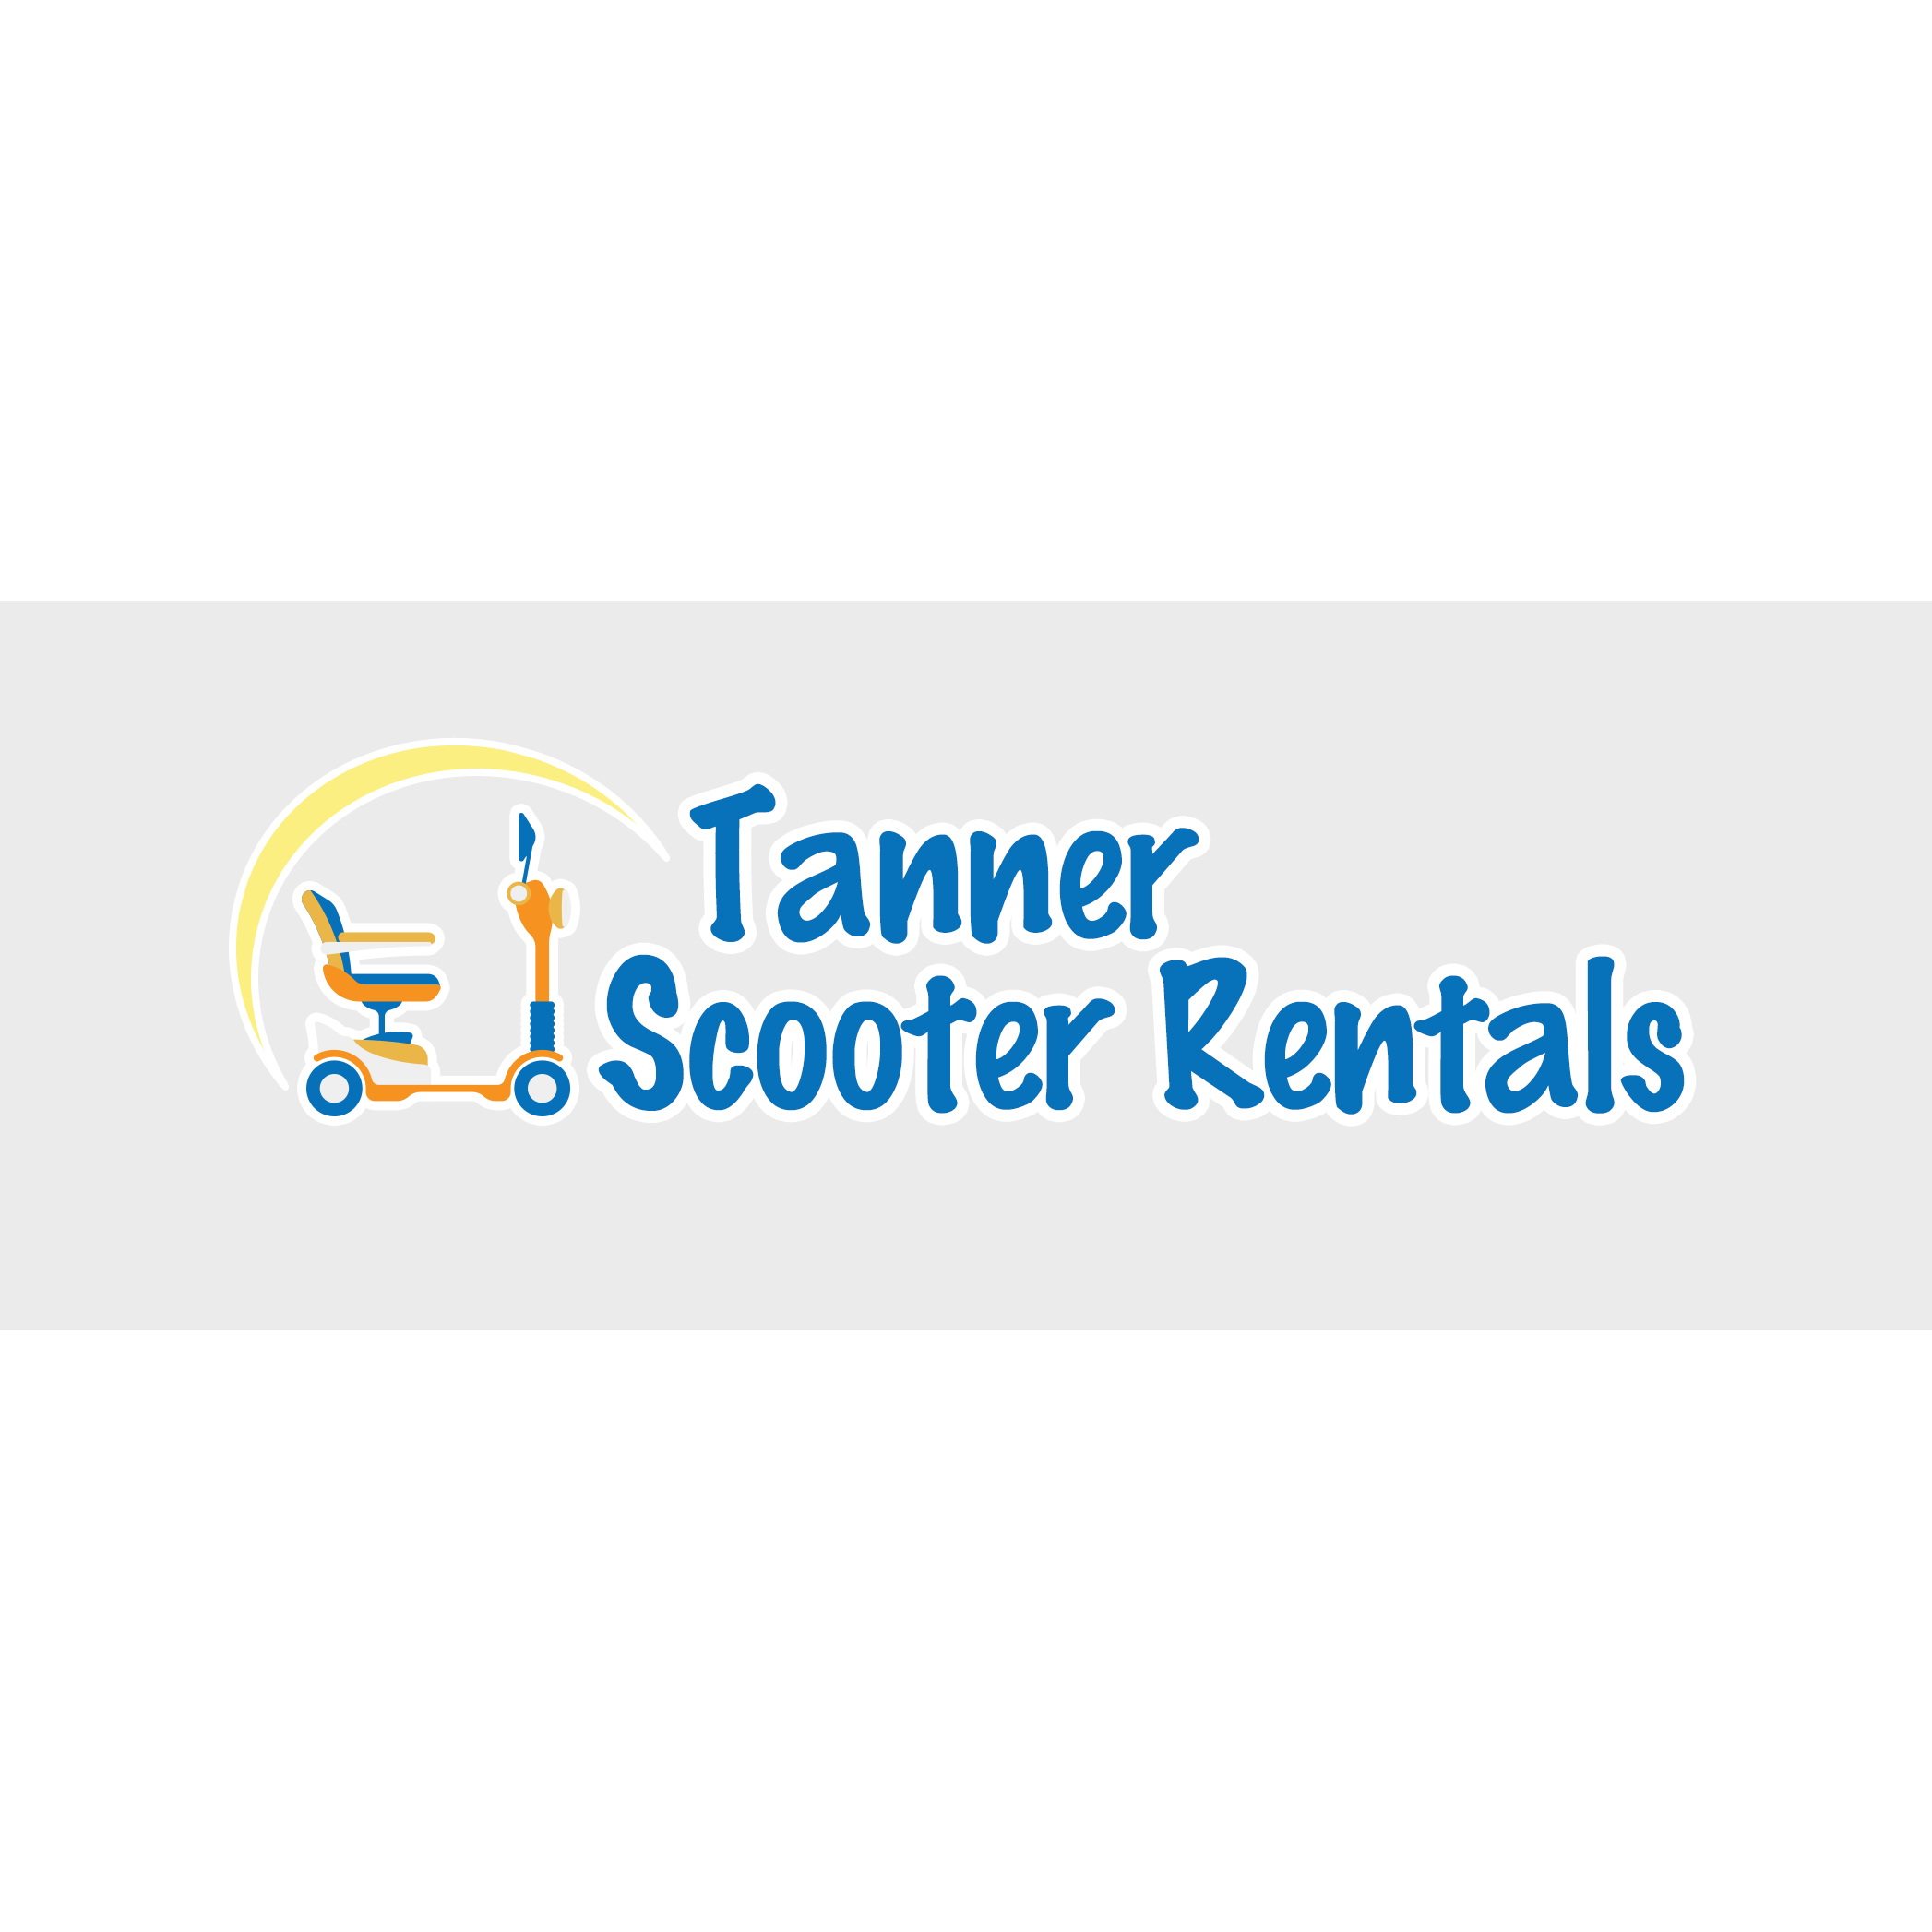 Tanner Scooter Rentals